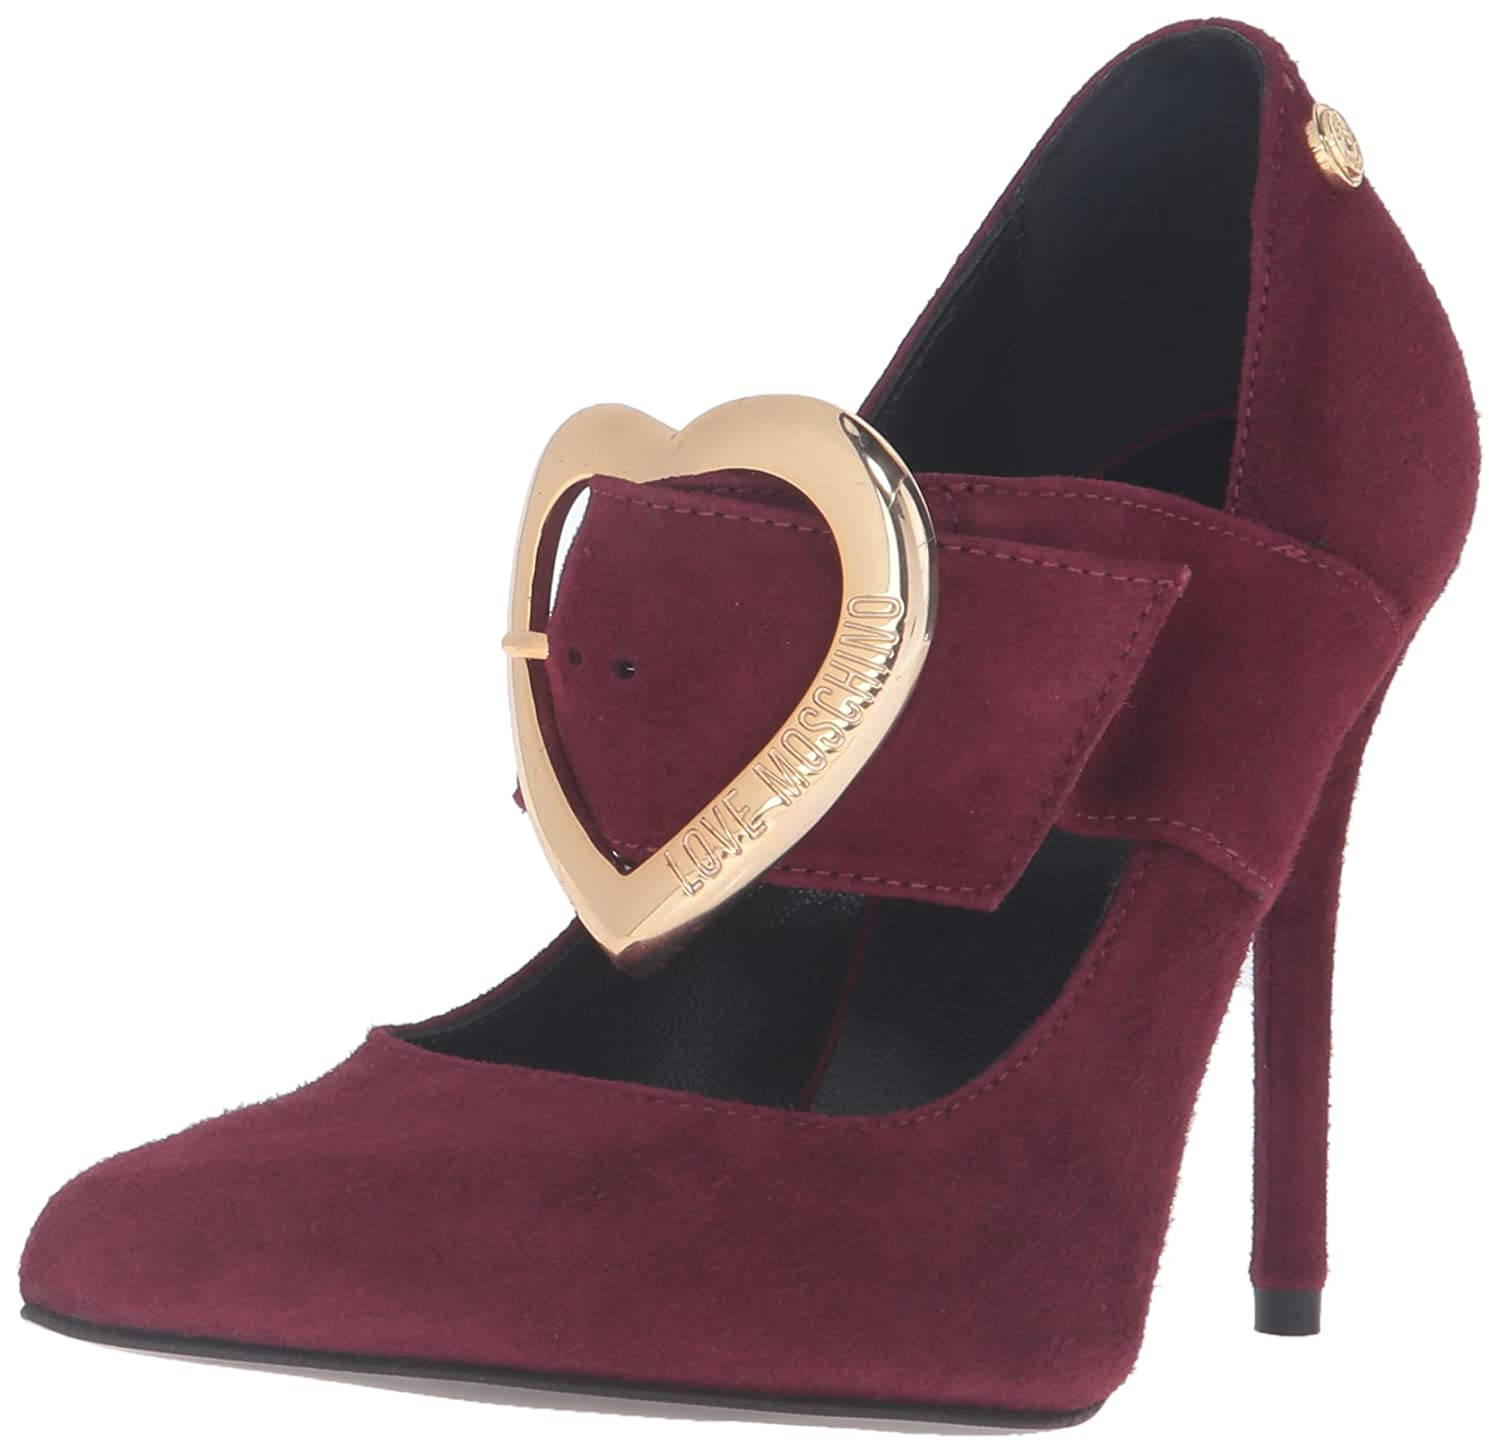 2d9fe4b876bb Amazon.com  Love Moschino Women s Heel Dress Pump Oxblood 40 EU 10 M US   Shoes